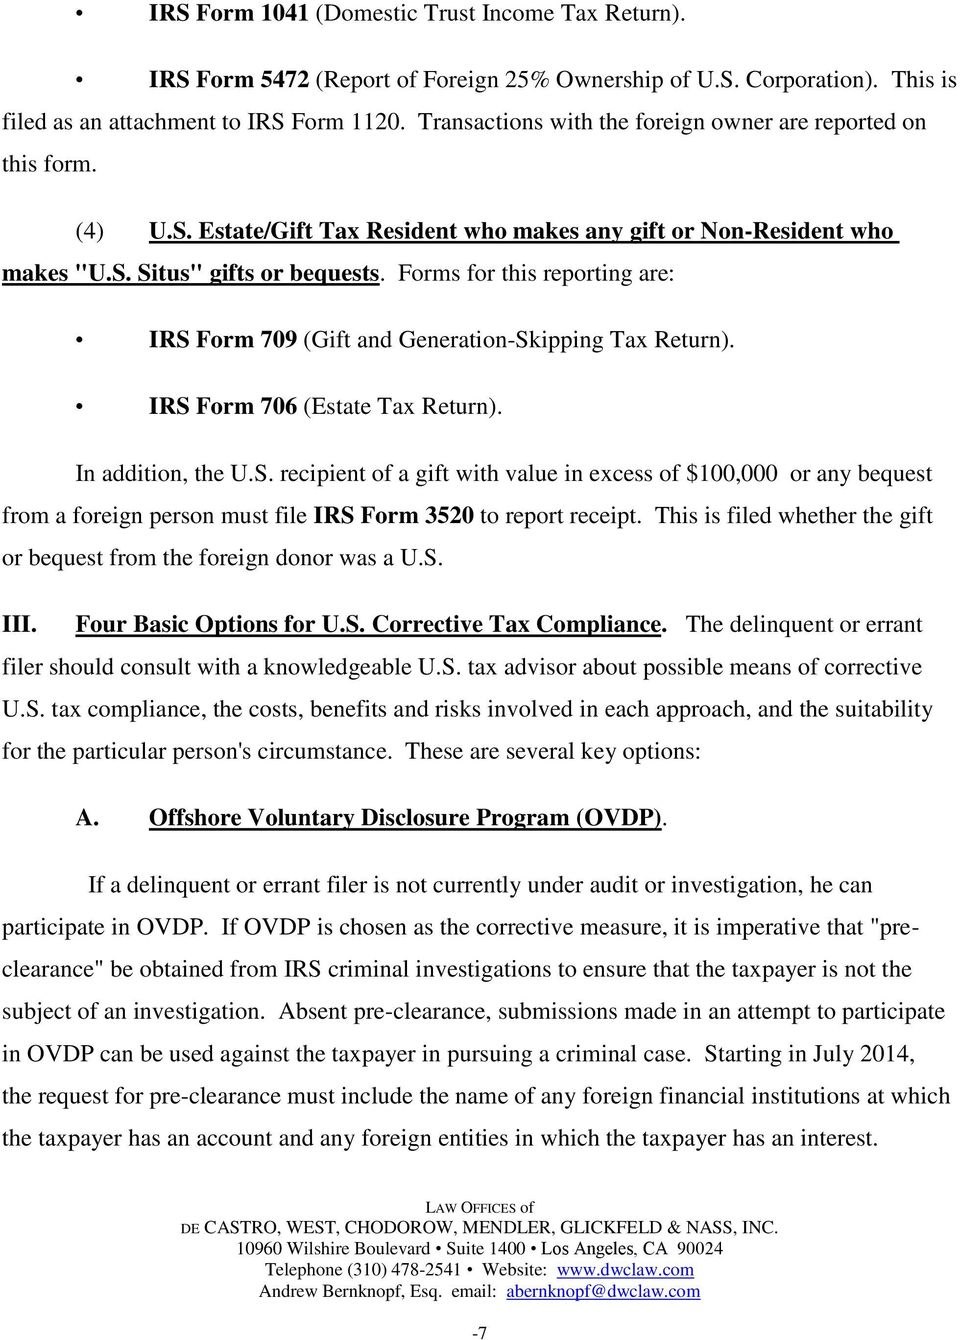 Forms for this reporting are: IRS Form 709 (Gift and Generation-Skipping Tax Return). IRS Form 706 (Estate Tax Return). In addition, the U.S. recipient of a gift with value in excess of $100,000 or any bequest from a foreign person must file IRS Form 3520 to report receipt.